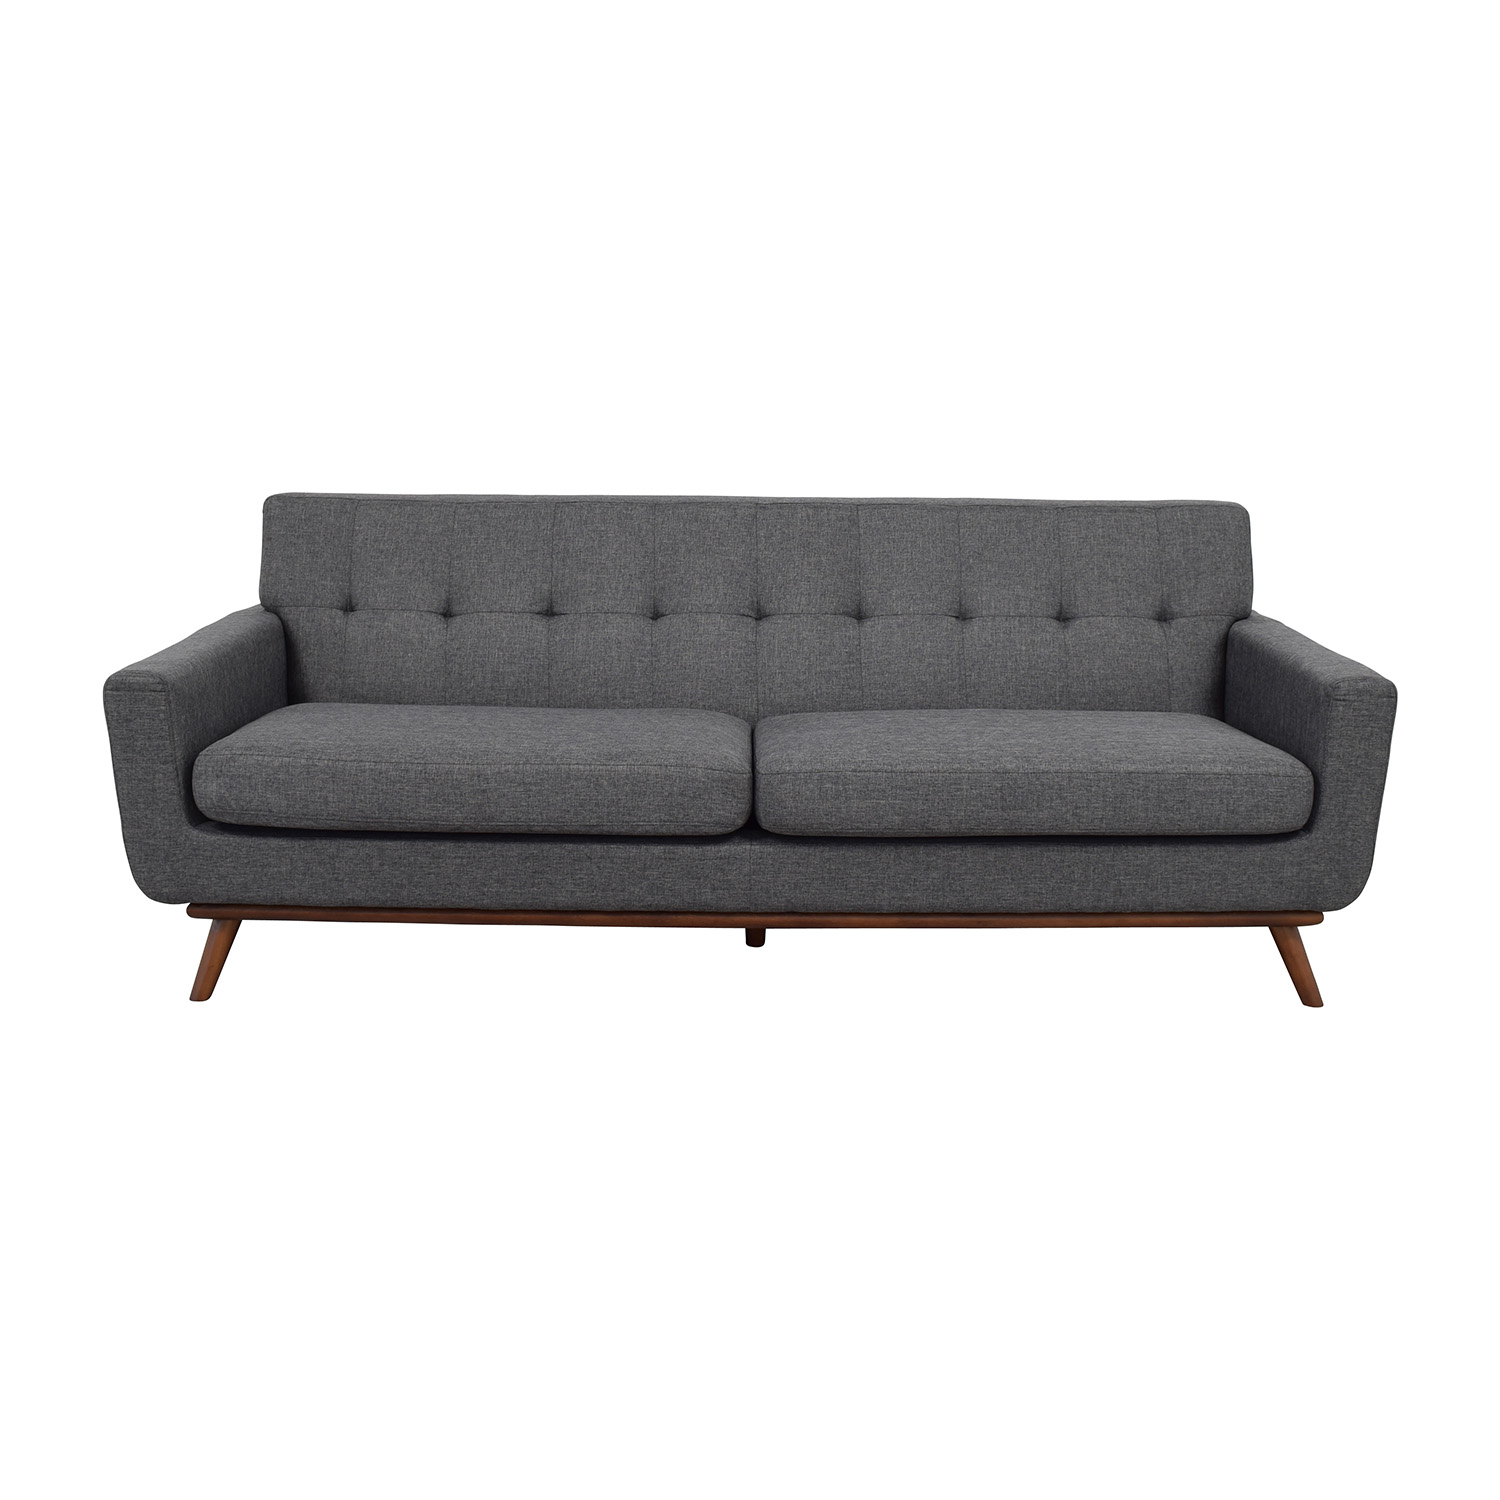 InMod InMod Charcoal Grey Tufted Lars Sofa price